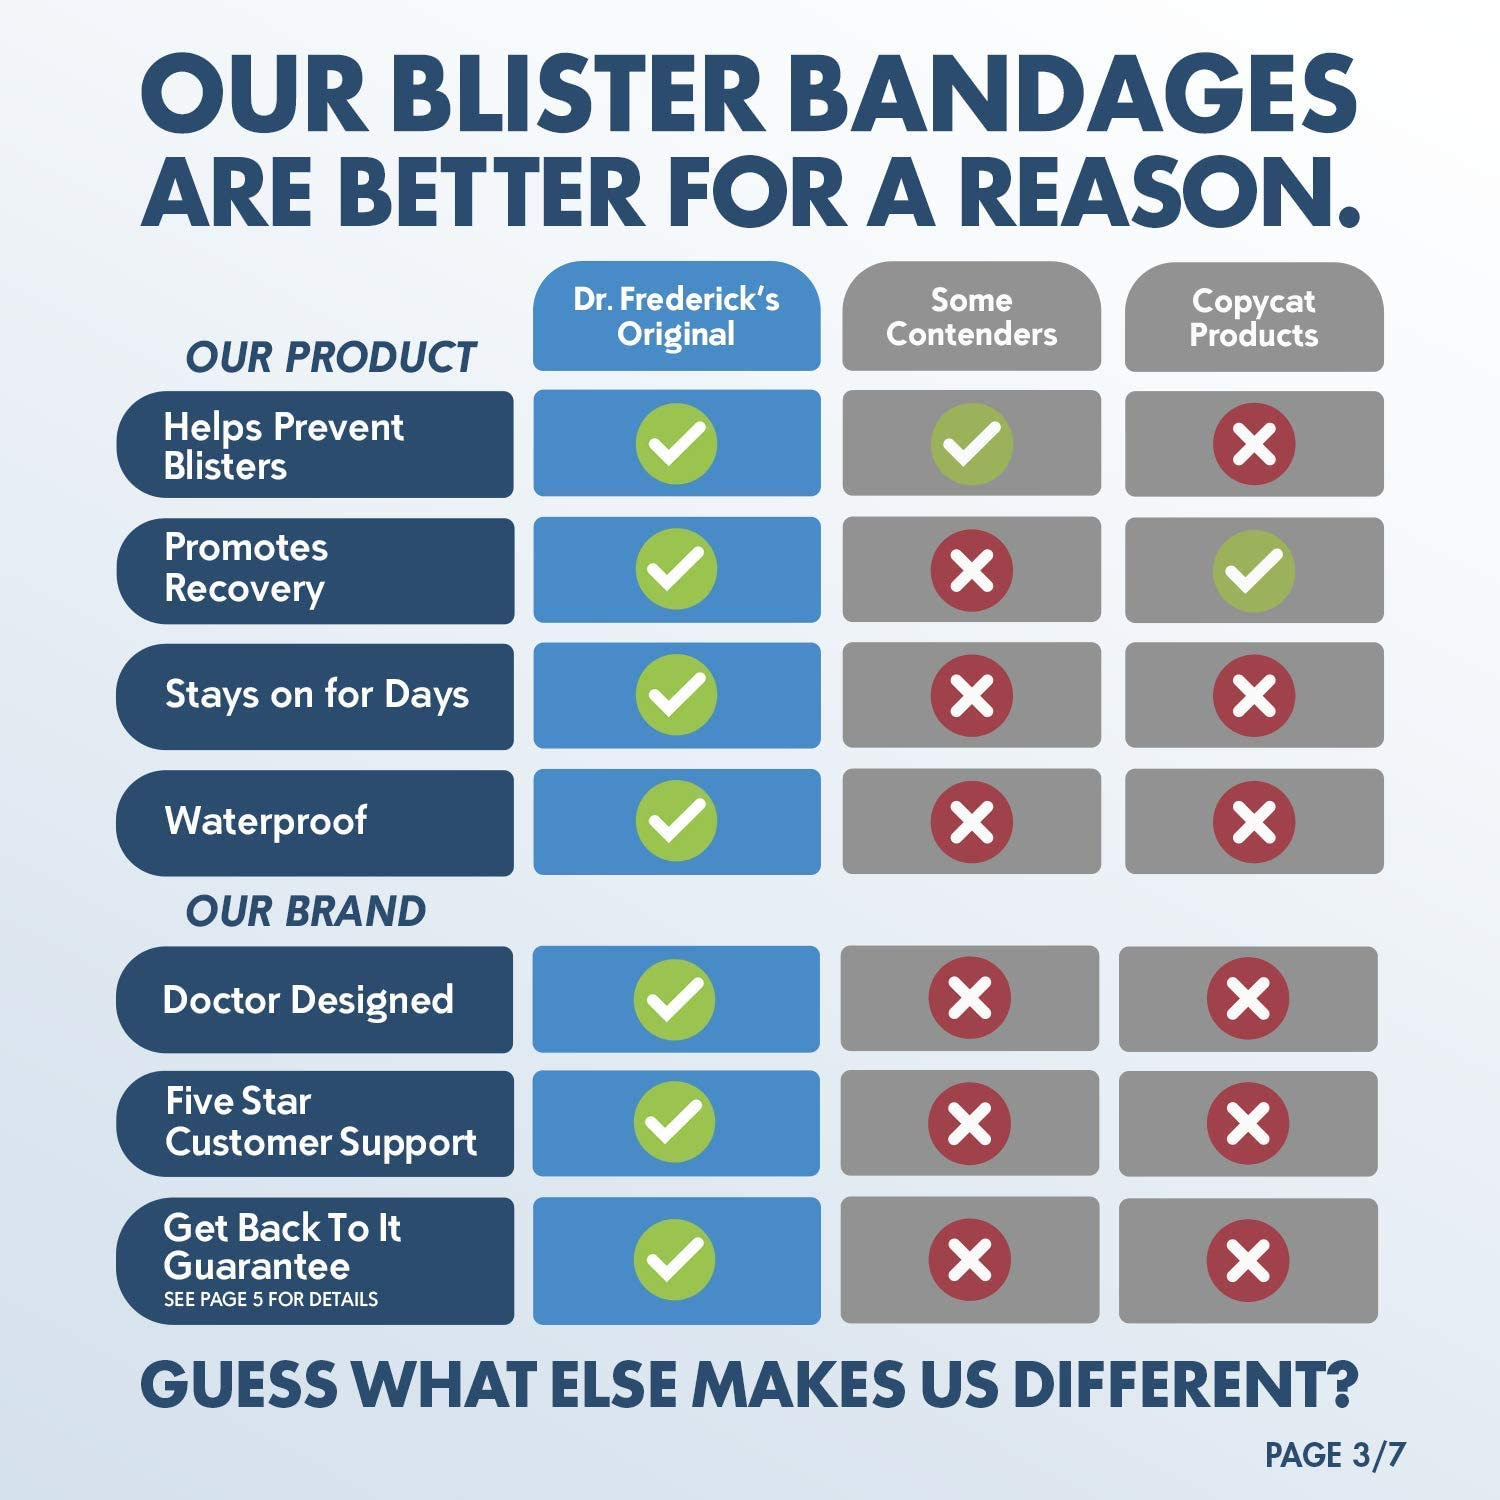 Dr. Frederick's Original Better Blister Bandages - 12 ct Variety - Waterproof Hydrocolloid Bandages for Foot, Toe, Heel Blister Prevention & Recovery - Blister Pads: Health & Personal Care